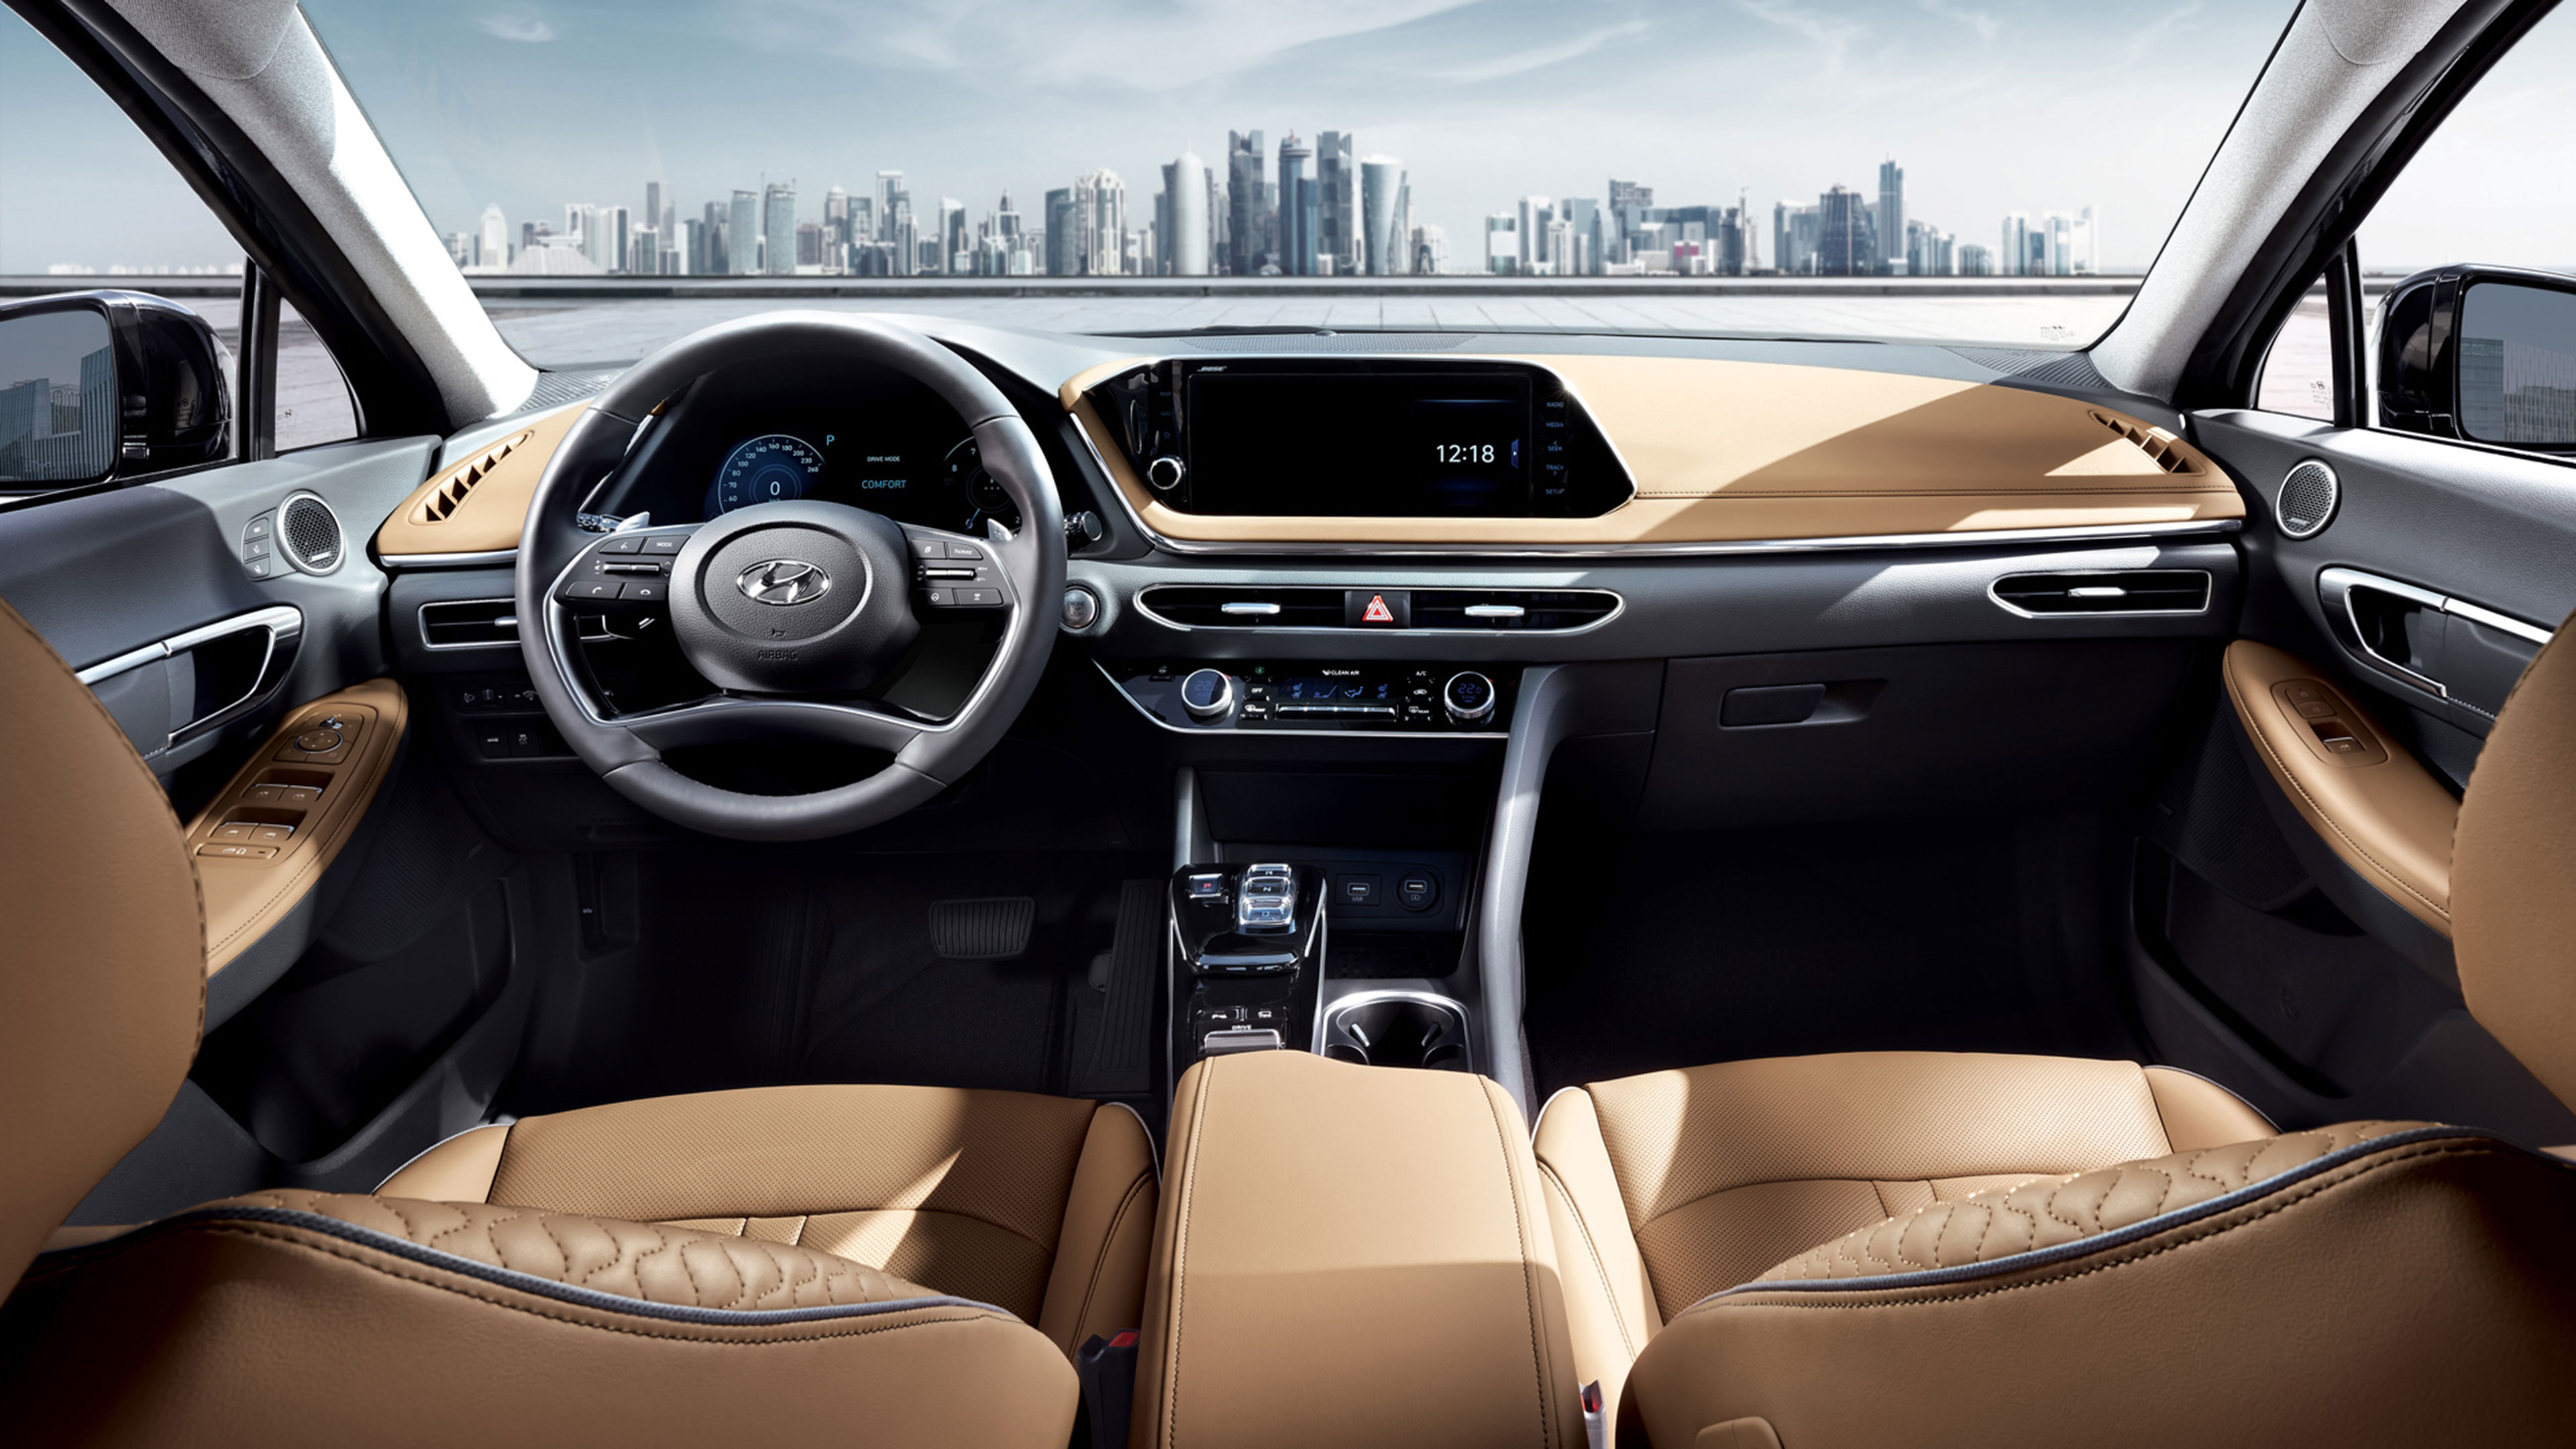 56 Gallery of Hyundai Sonata 2020 Pictures by Hyundai Sonata 2020